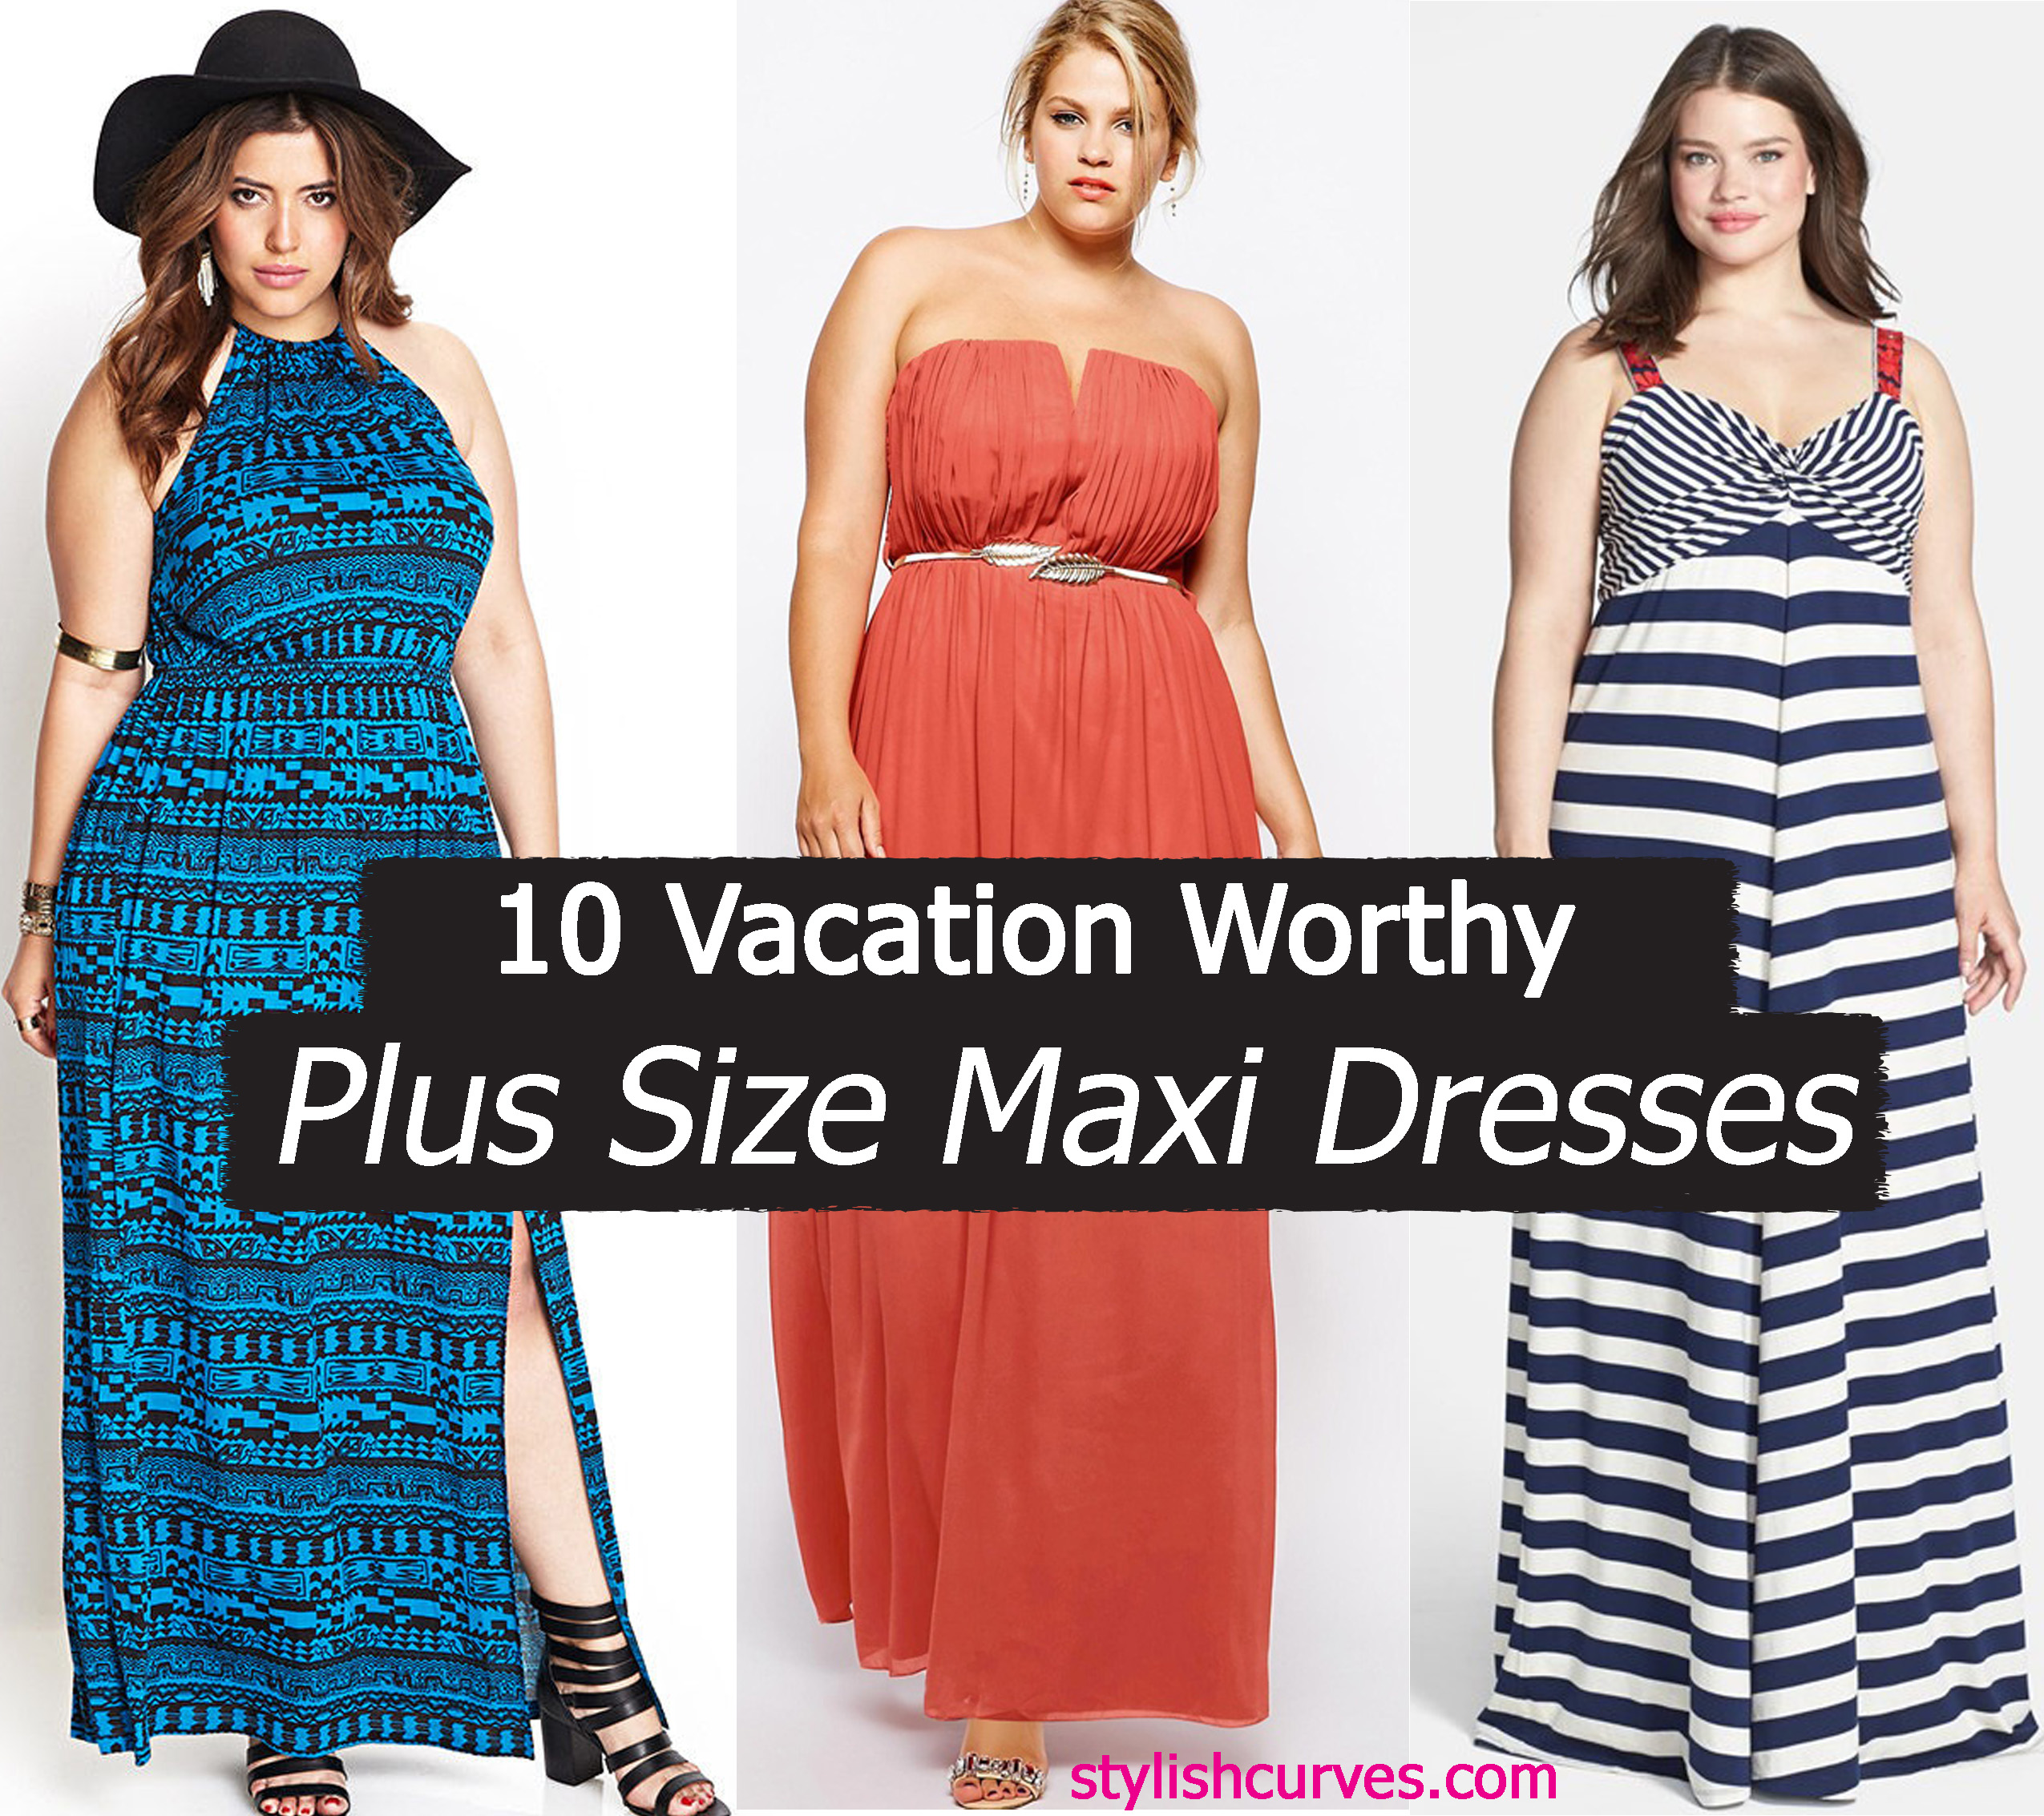 216d7d2eed6 10 VACATION WORTHY PLUS SIZE MAXI DRESSES THAT WE LOVE